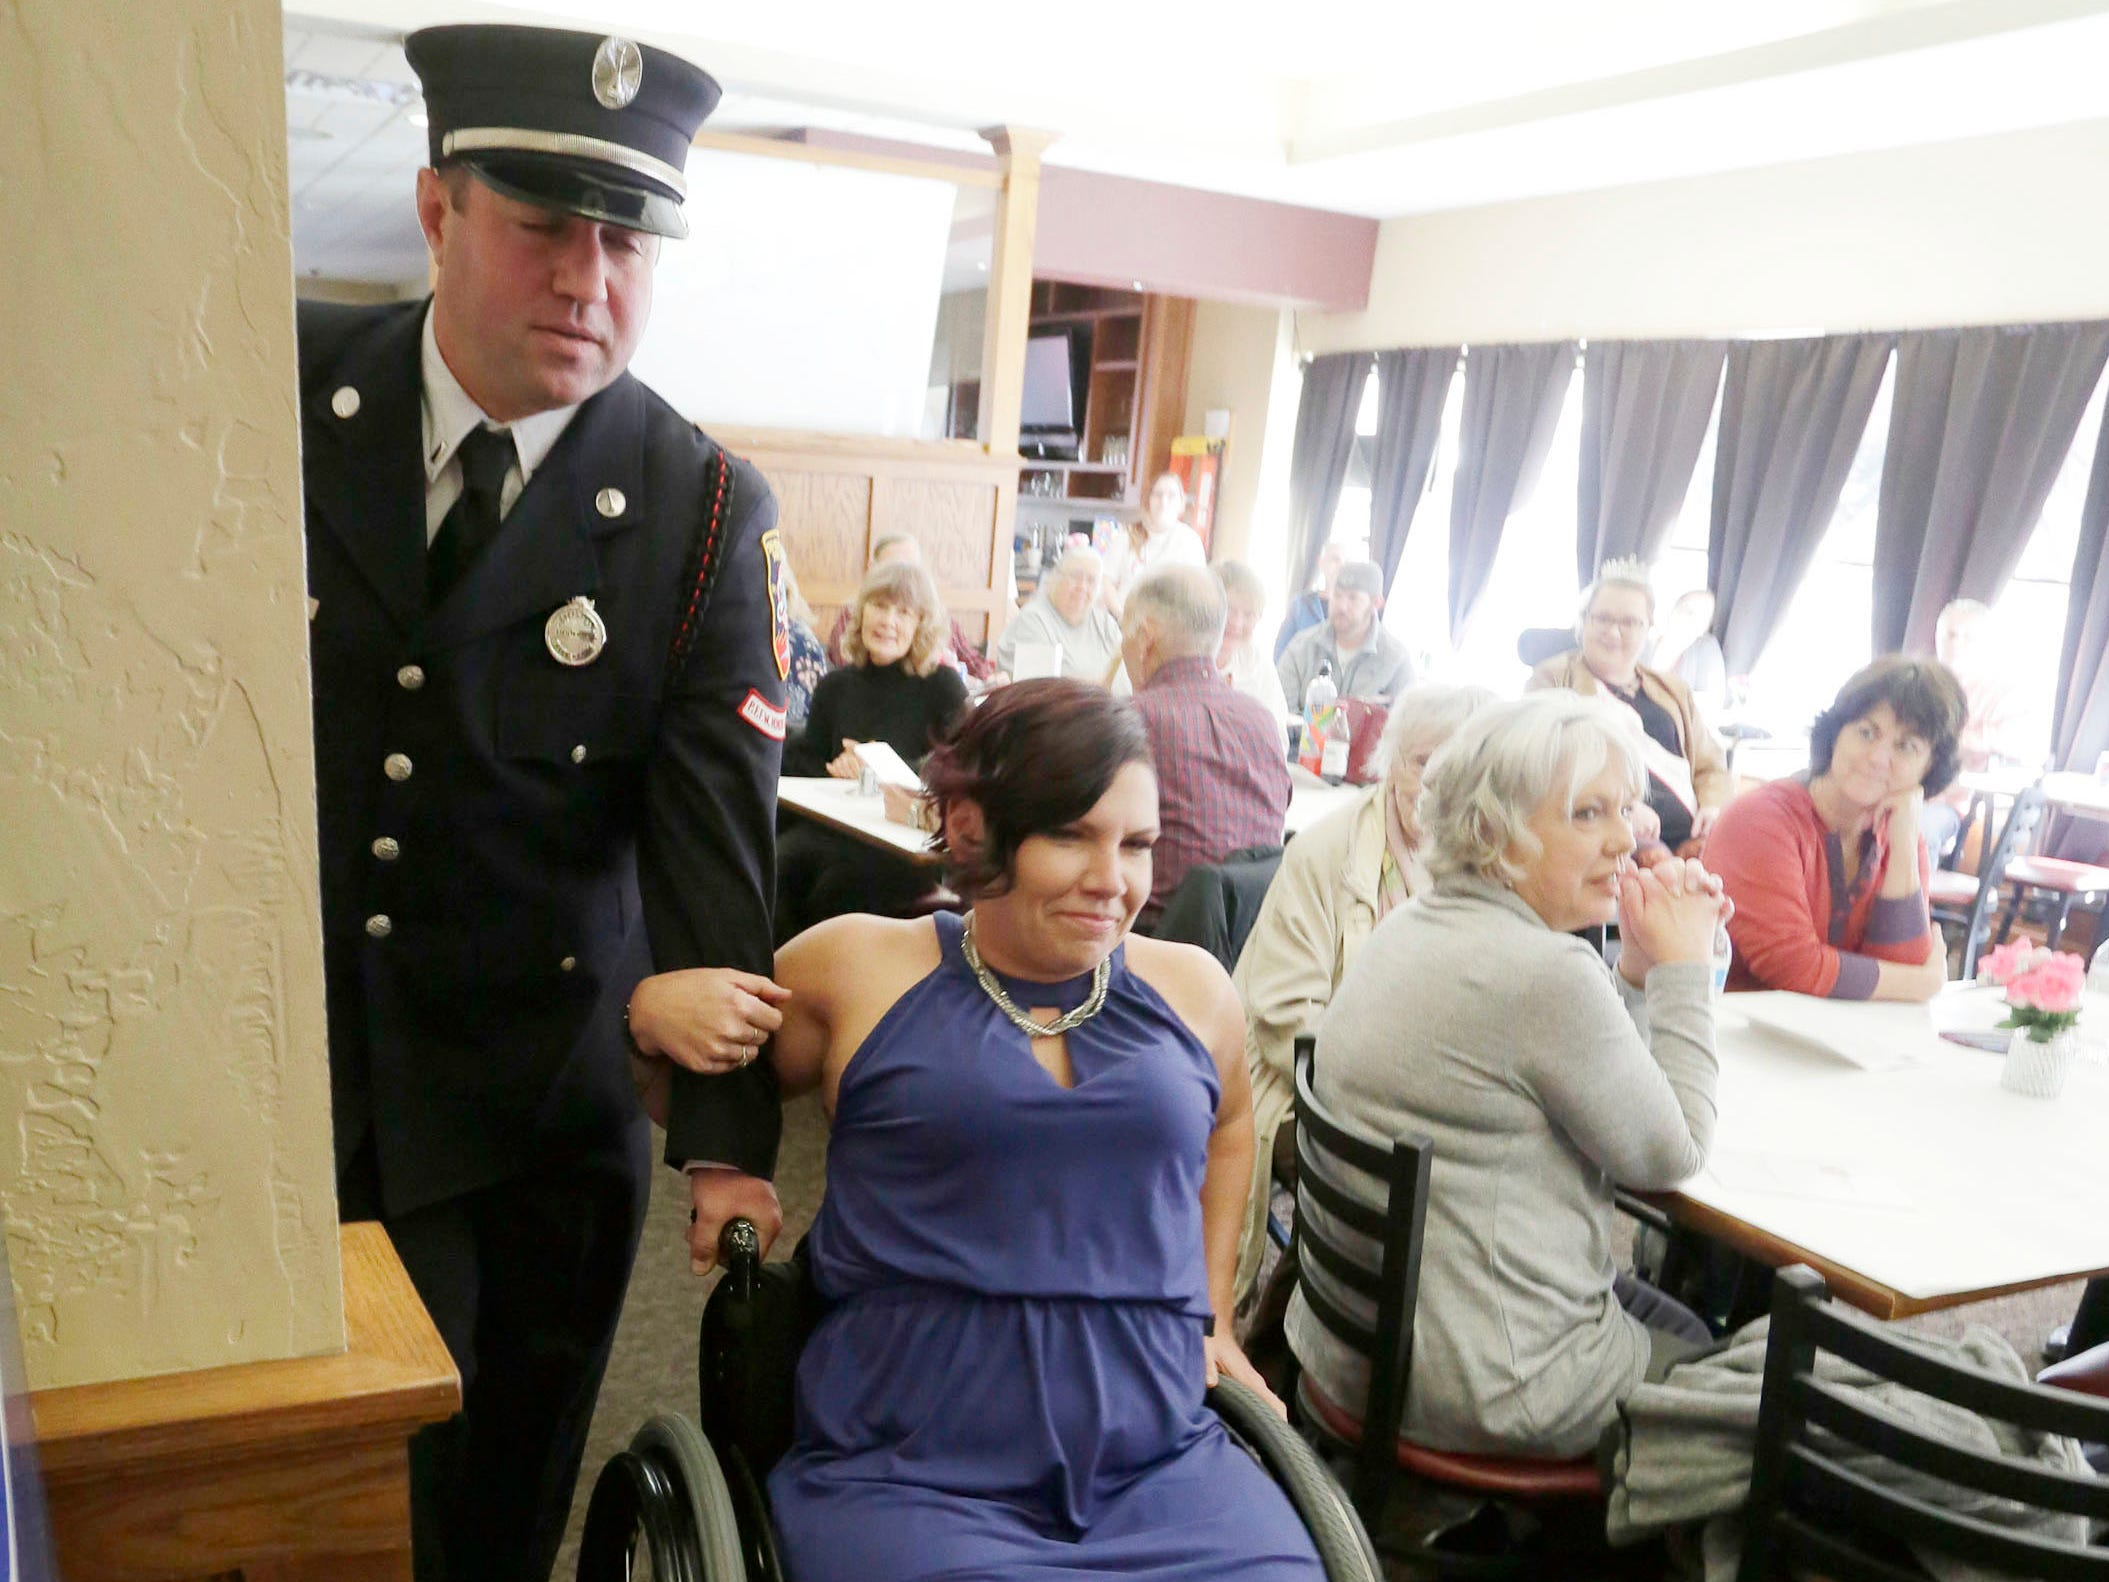 Contestant Autumn Neugent, of Madison, Wis., is escorted by a Sheboygan firefighter before speaking at the Ms. Wheelchair, Wisconsin, Saturday, November 3, 2018, in Plymouth, Wis. Neugent took top honors. Neugent suffers from Multiple Sclerosis.